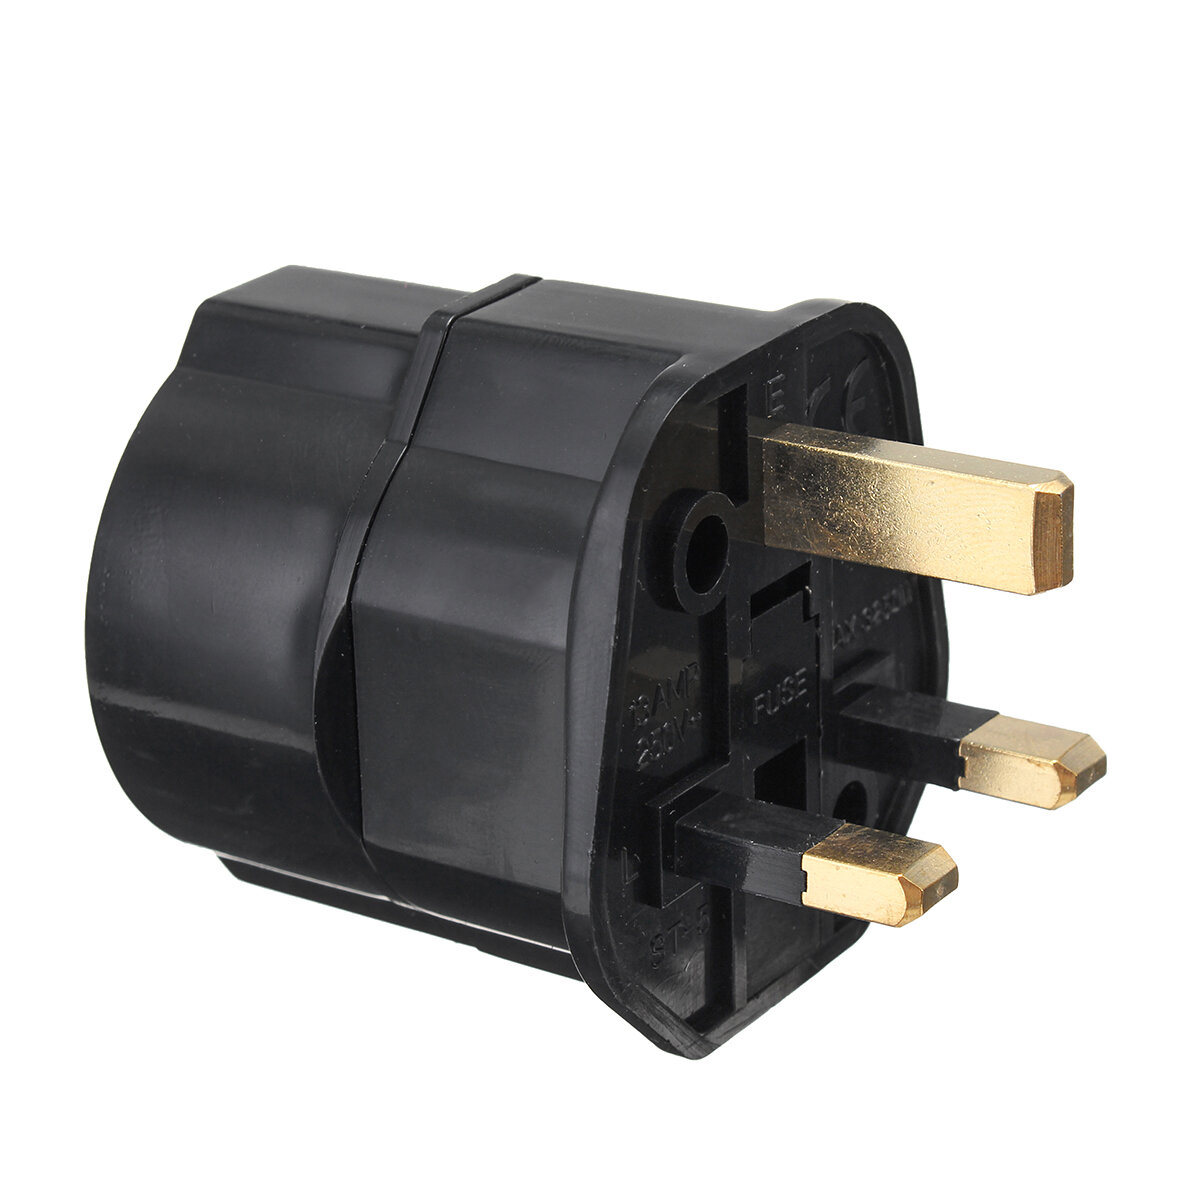 Travel Adapter Eu To Uk Universal Power Travel Plug Adapter Converting From Germany Eu To Uk Gb England